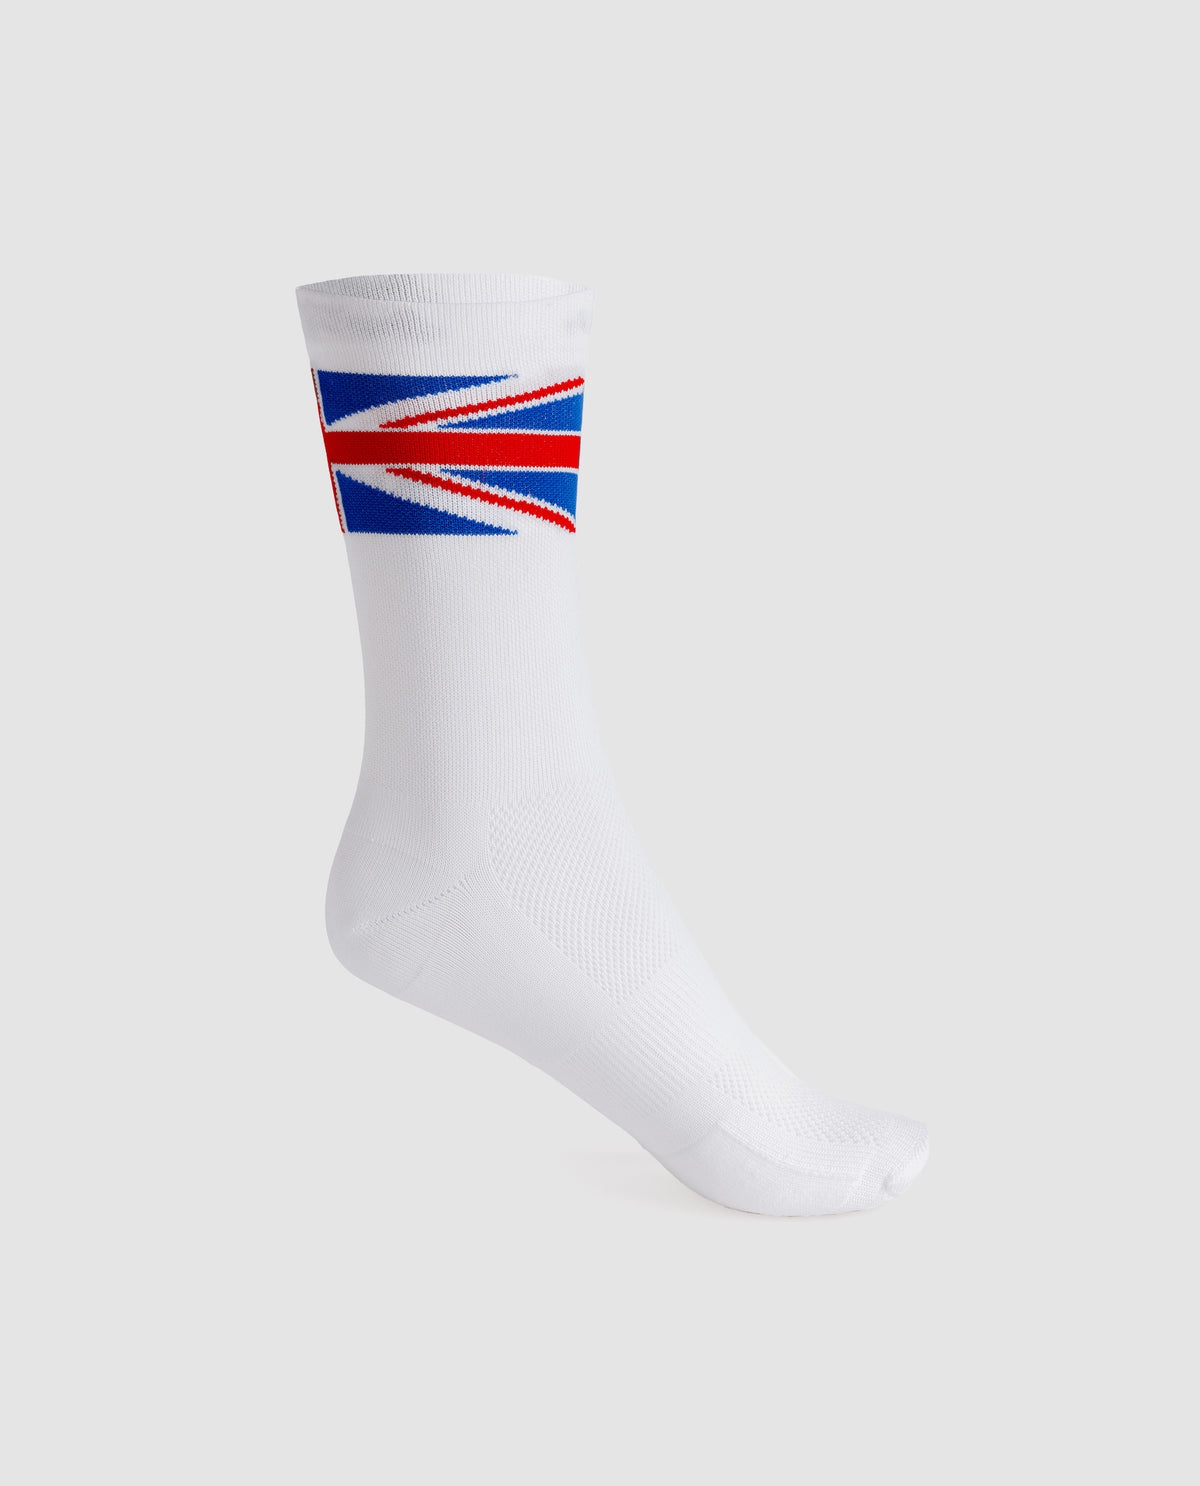 Glory Socks UK